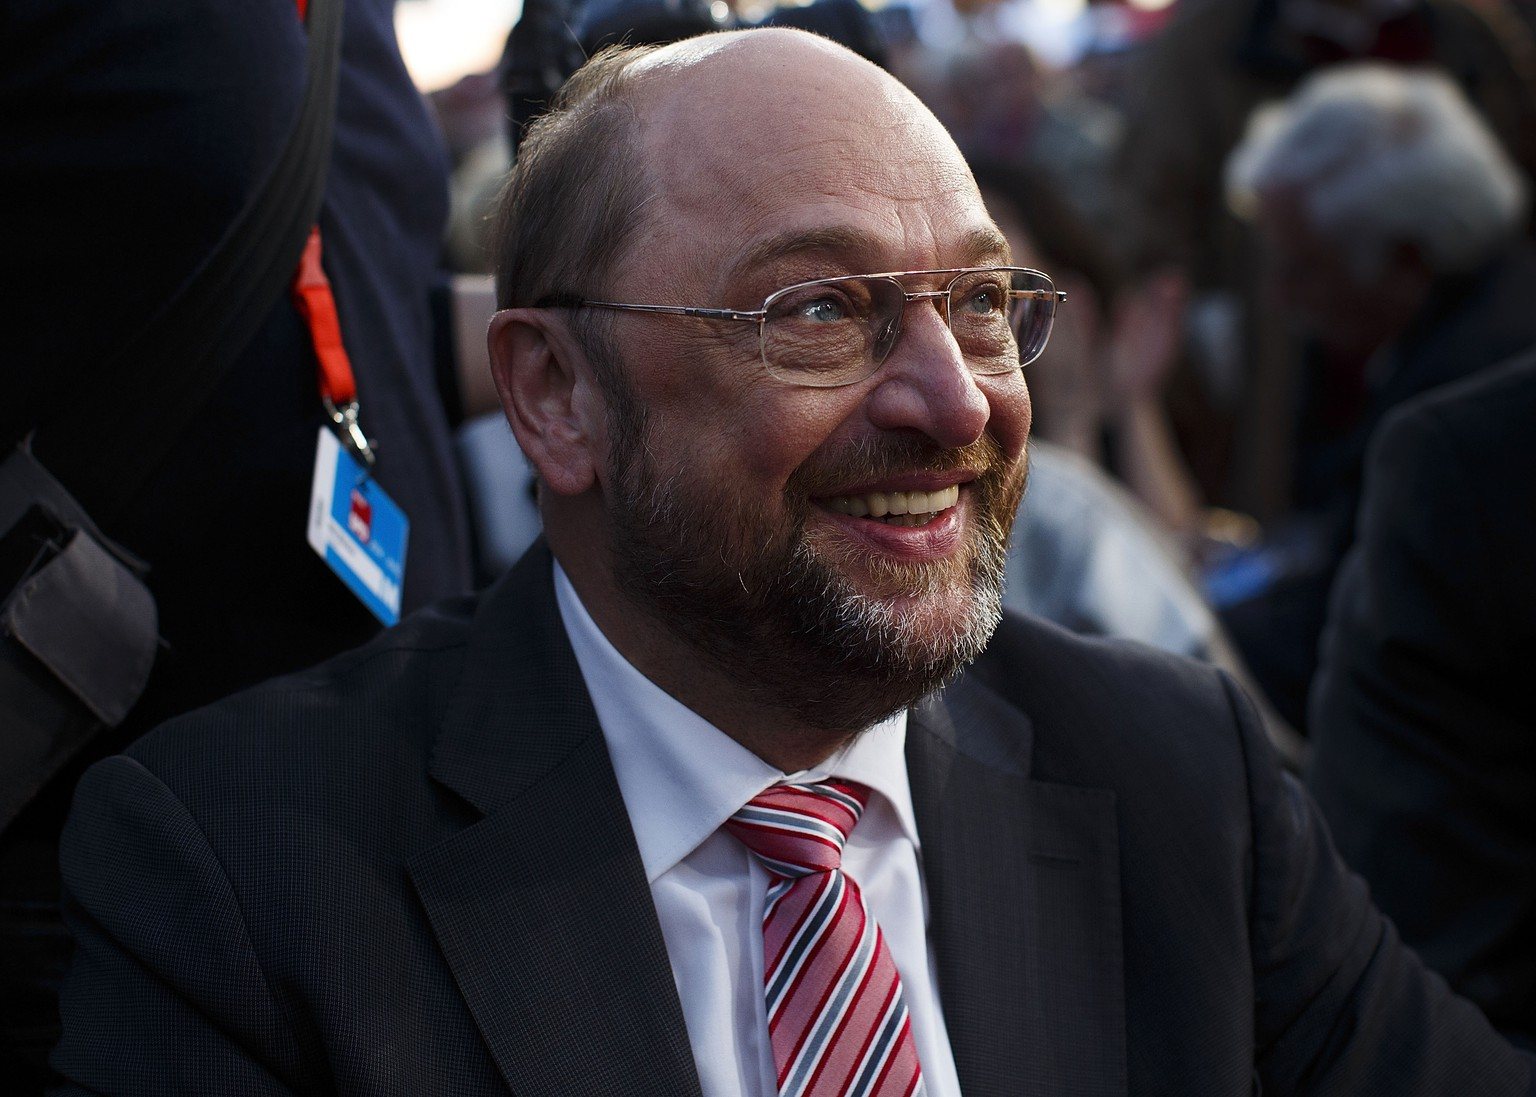 BERLIN, GERMANY - MAY 19:  Martin Schulz, a Social Democrat and President of the European Parliament, claps his hands before he speaks to supporters at an election rally for European parliamentary elections on May 15, 2014 in Berlin, Germany. Schulz is running for the position of European Union Commissioner and so far has a strong lead over his main rival, Jean-Claude Juncker. European Union member states will hold parliamentary election from May 22-25.  (Photo by Carsten Koall/Getty Images)